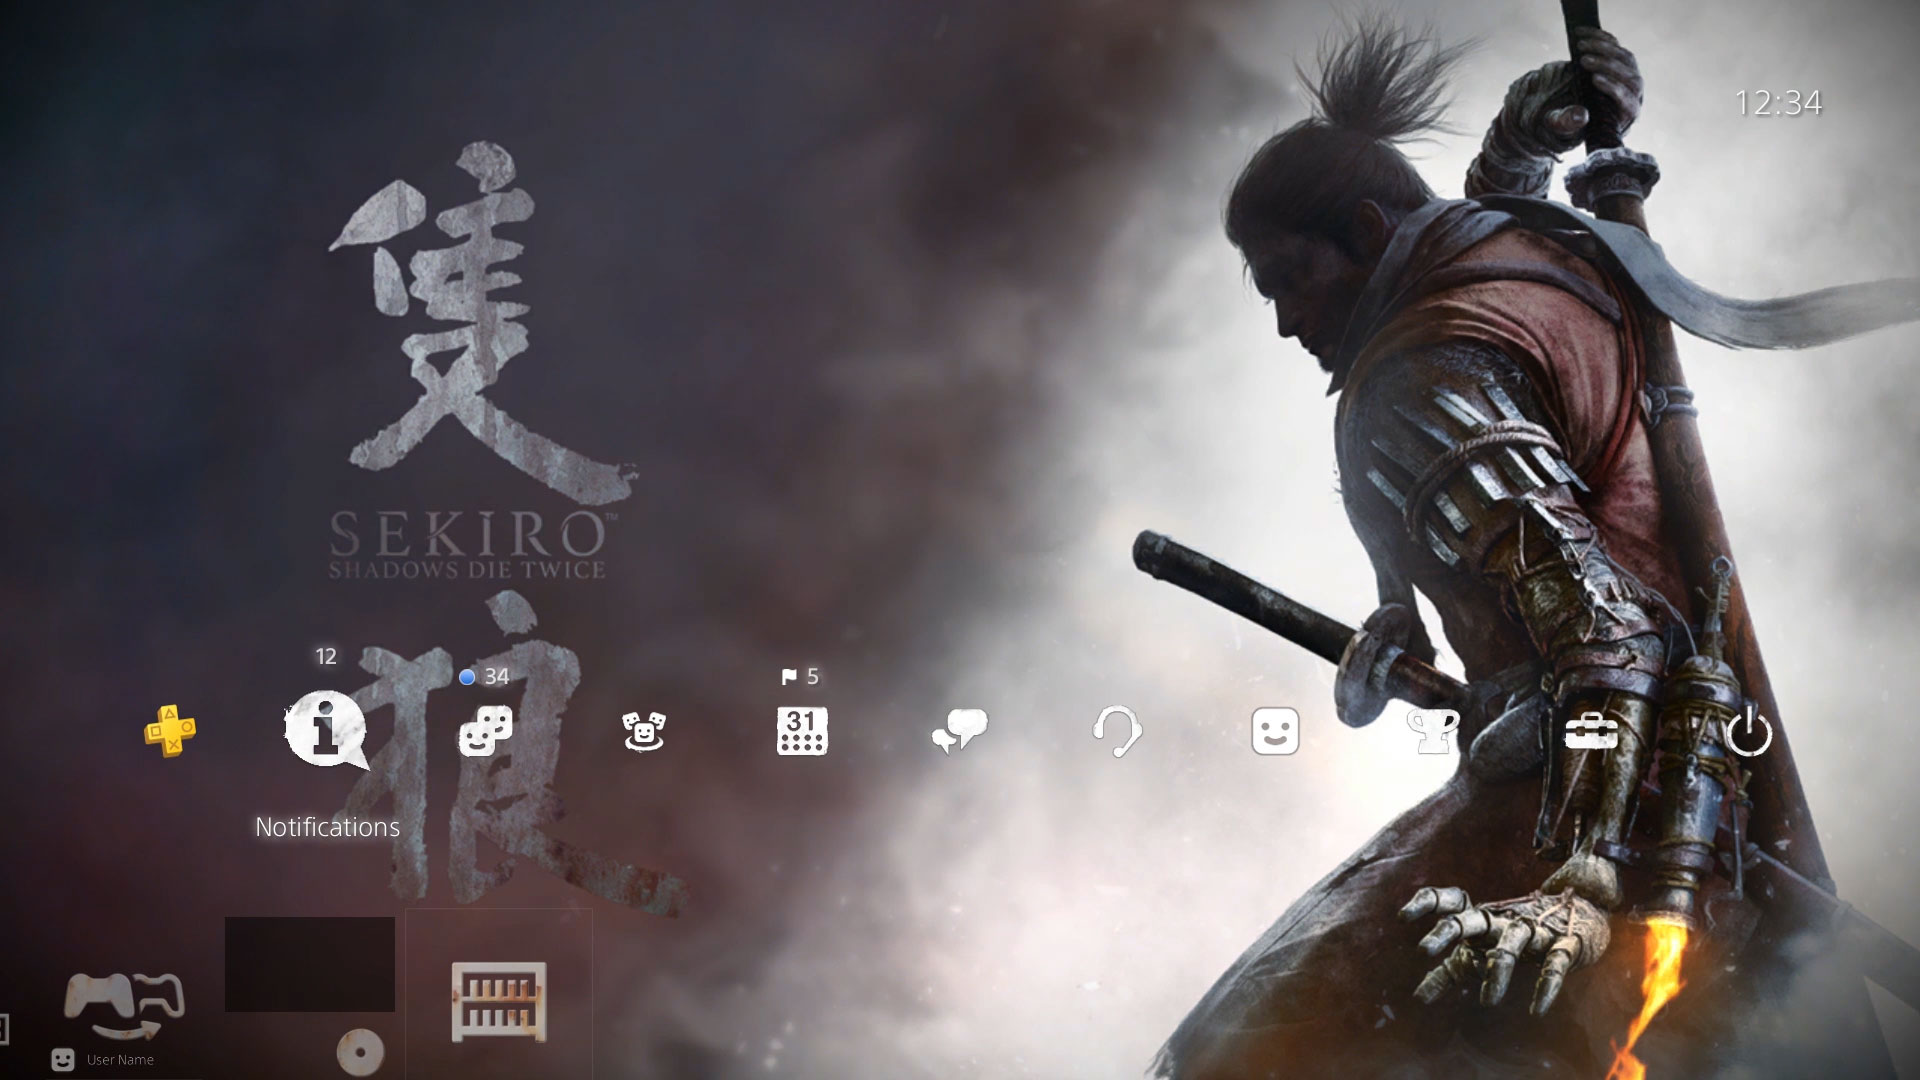 Download This Sekiro Shadows Die Twice Dynamic Theme For Free All